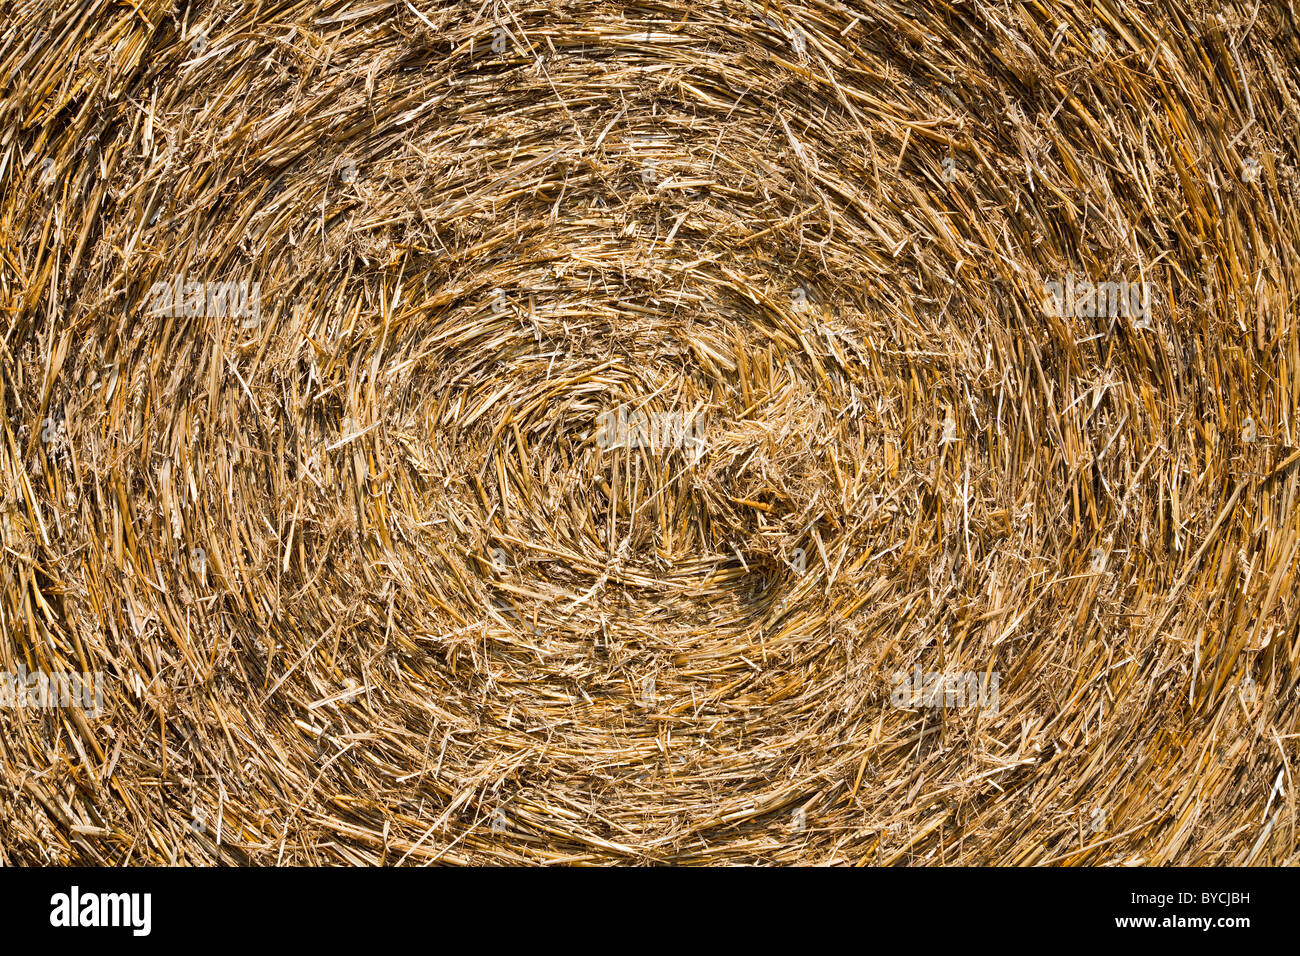 bale of the straw - background - Stock Image